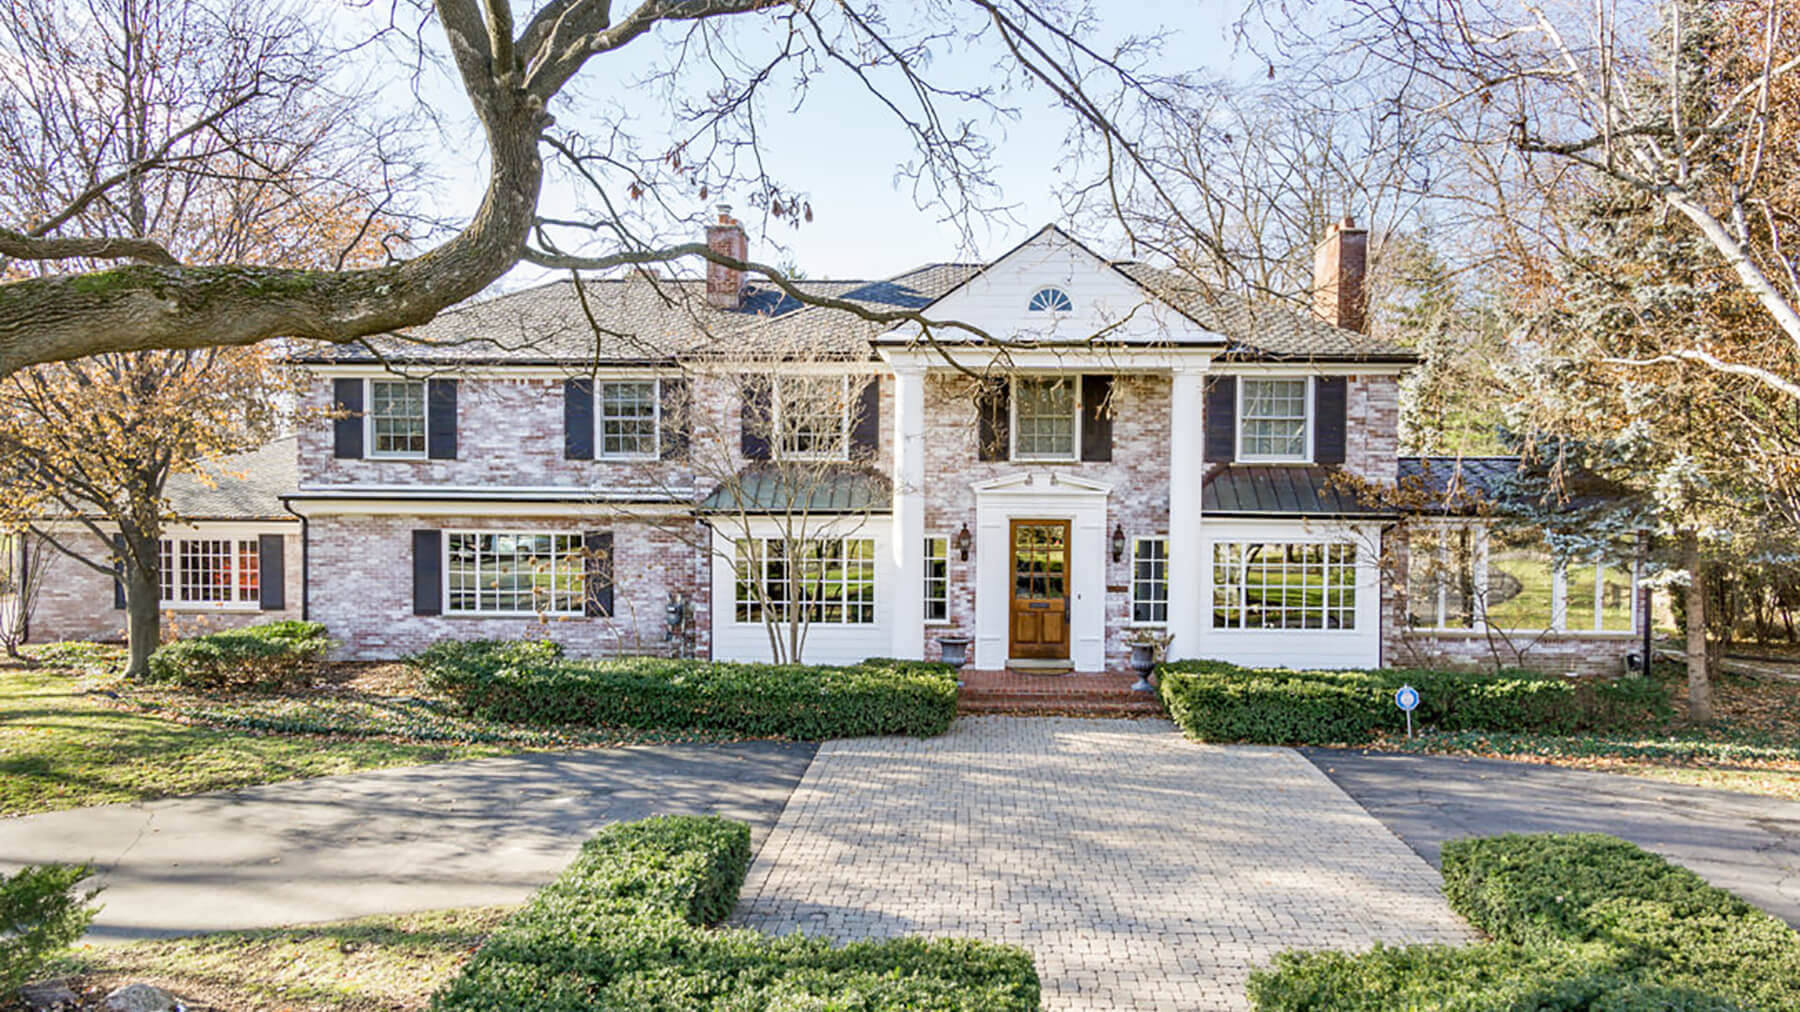 1527 N Glengarry - Bloomfield Hills, Michigan - $2,455,000 USD